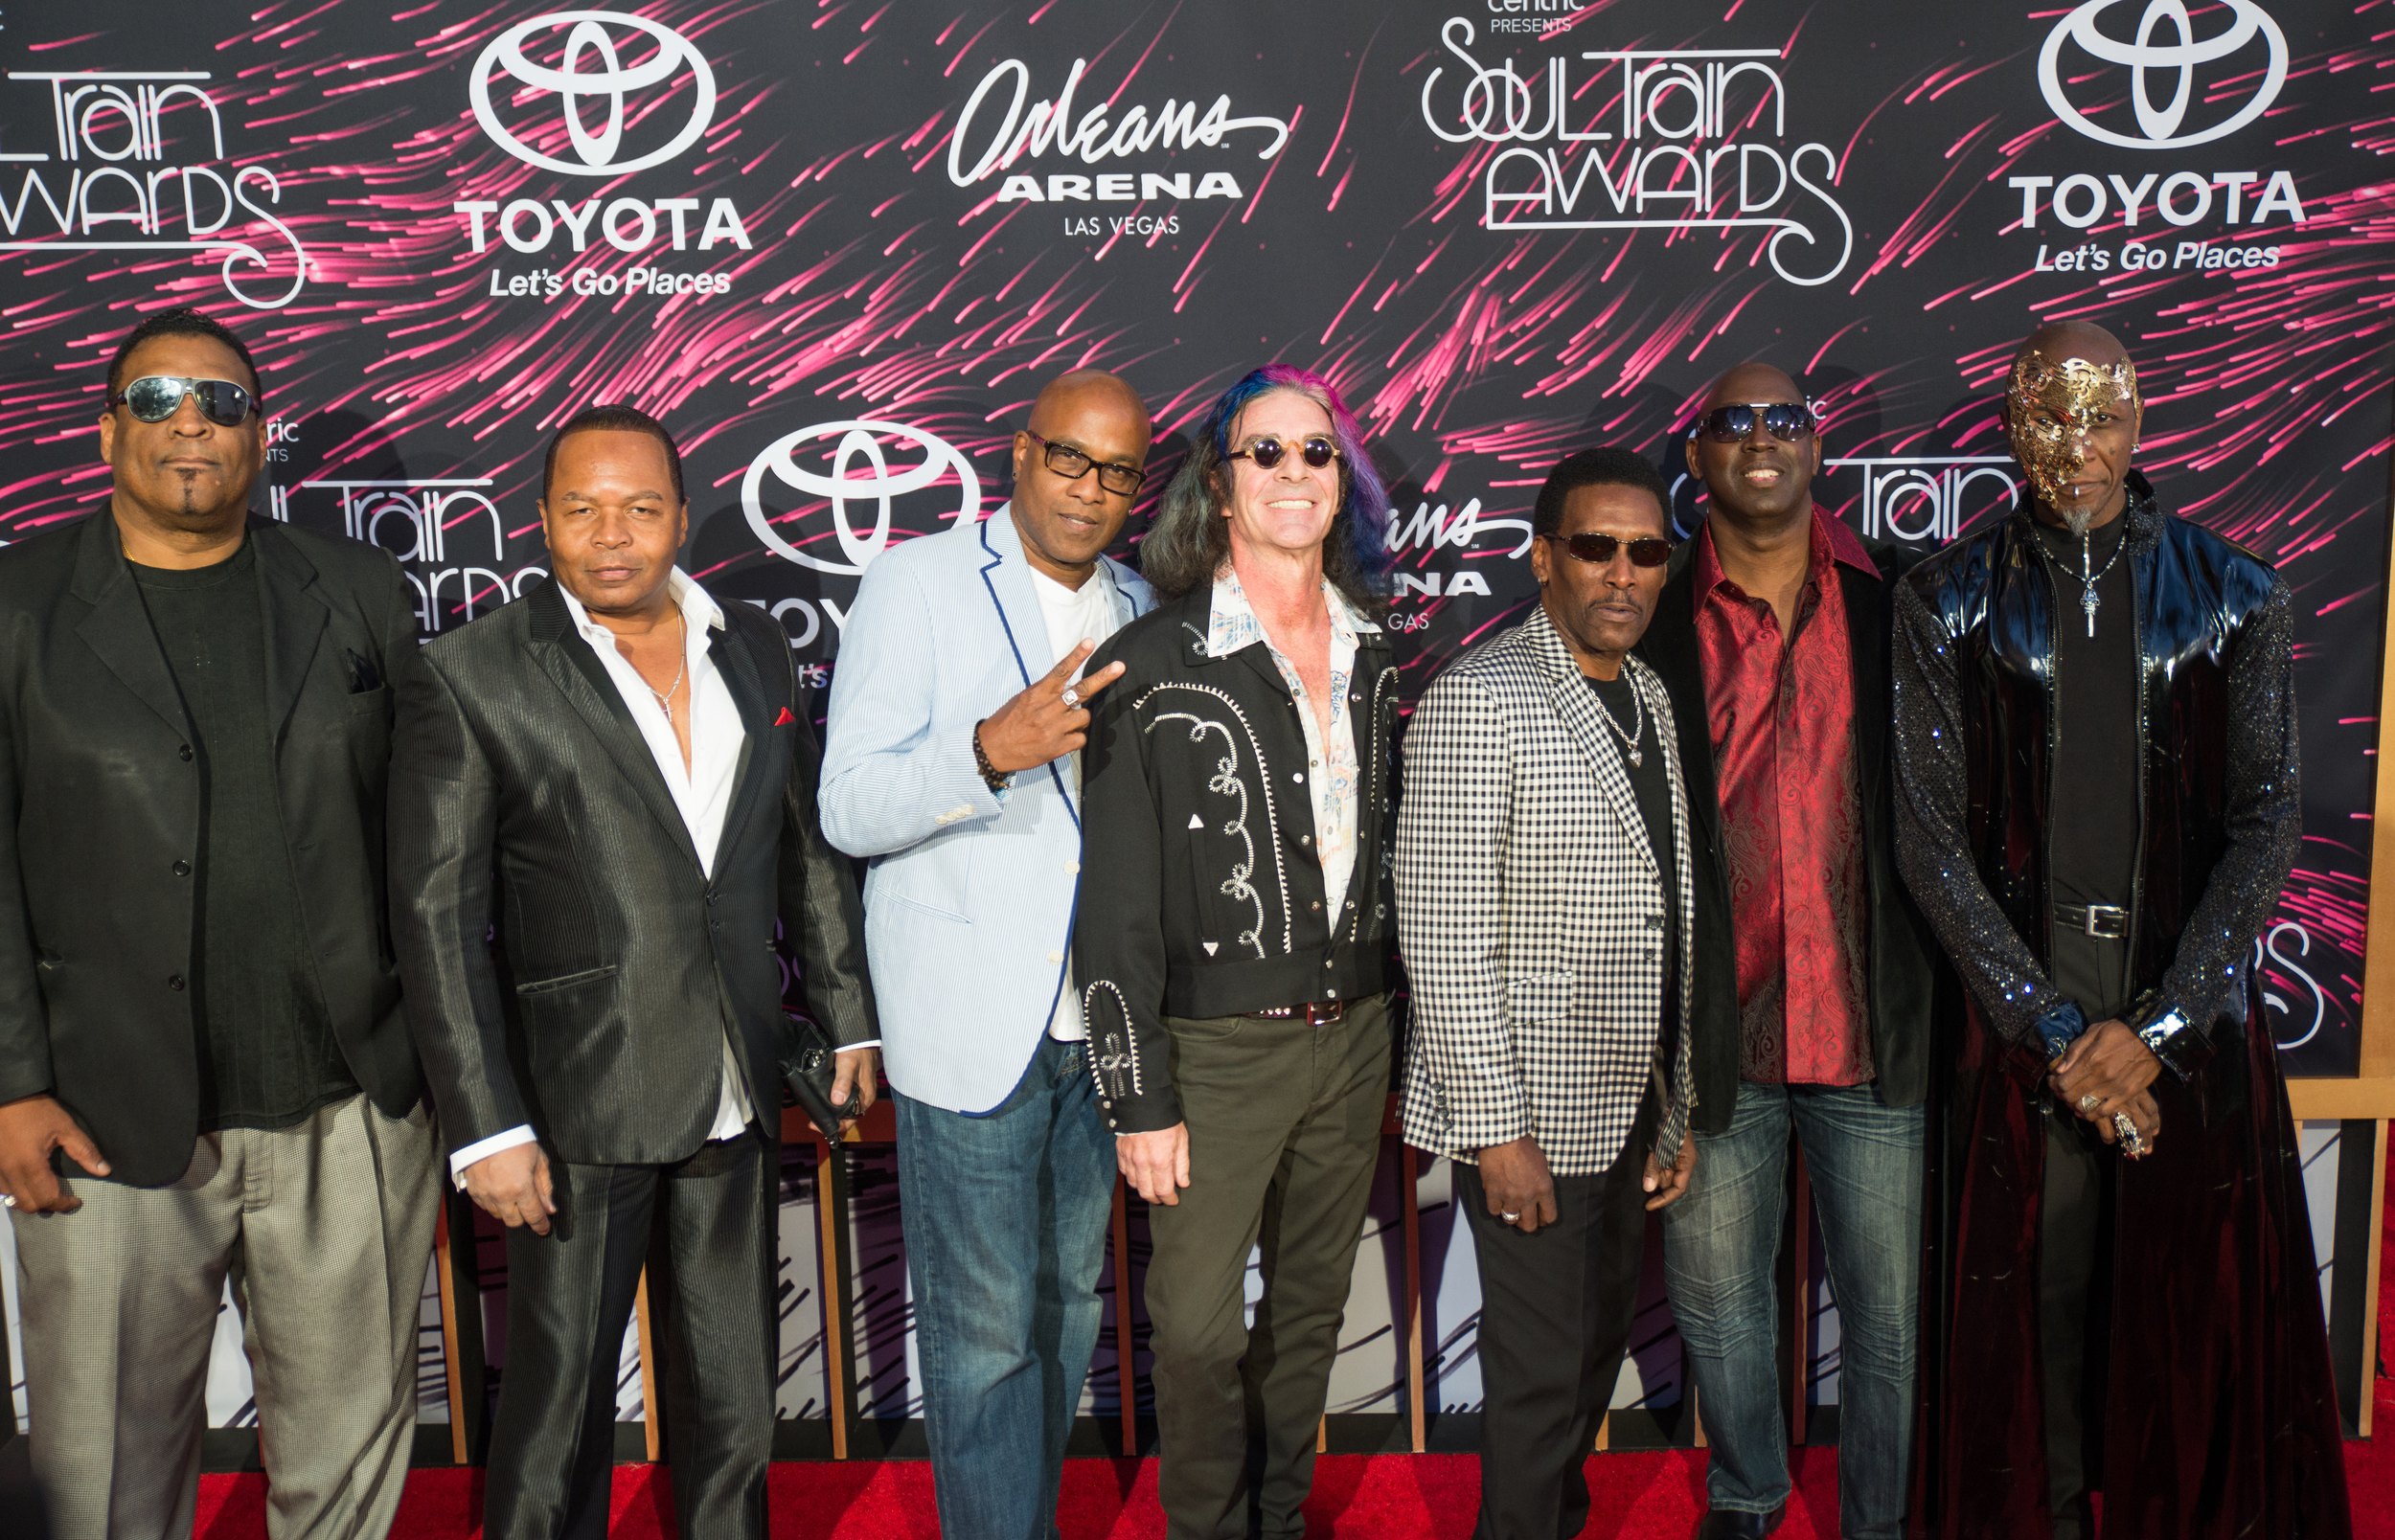 Cameo was on the red carpet at the SoulTrain Awards